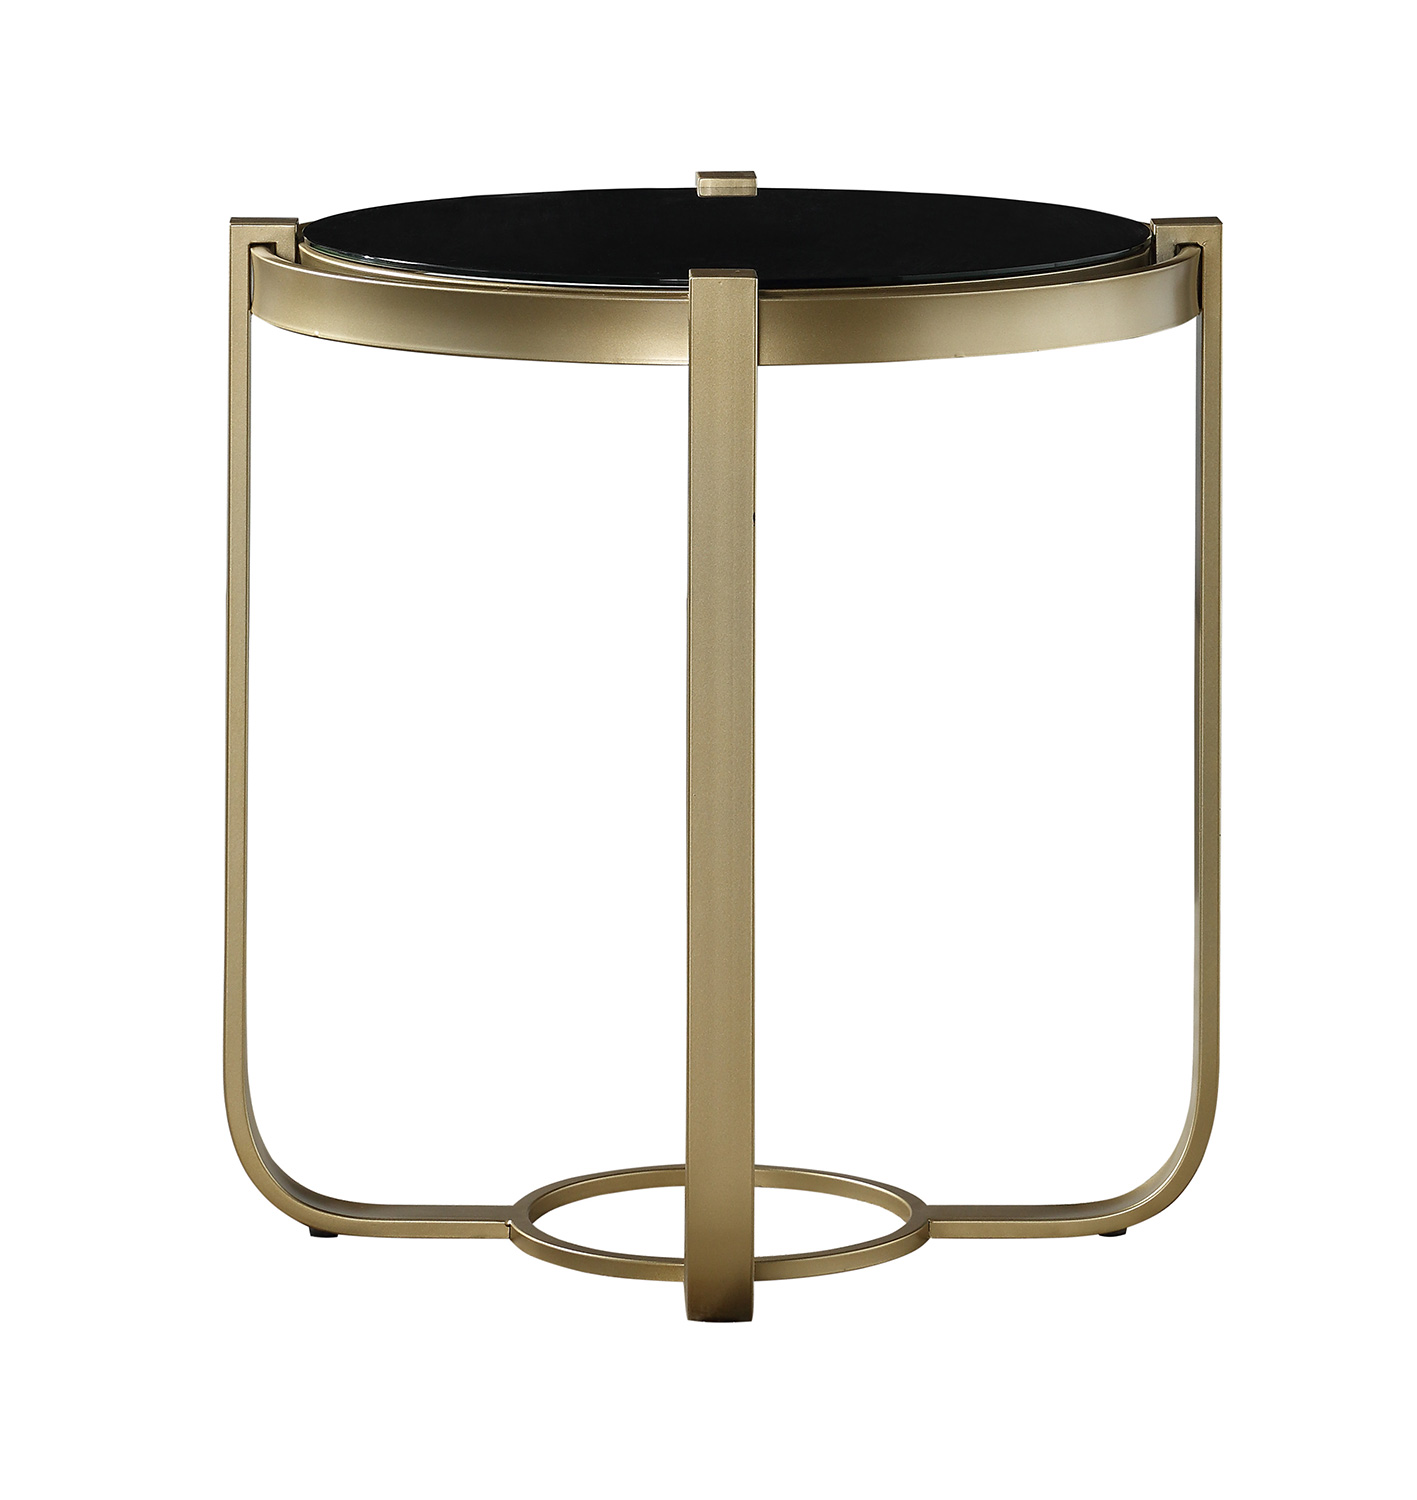 Homelegance Caracal Round End Table with Black Glass Insert - Gold